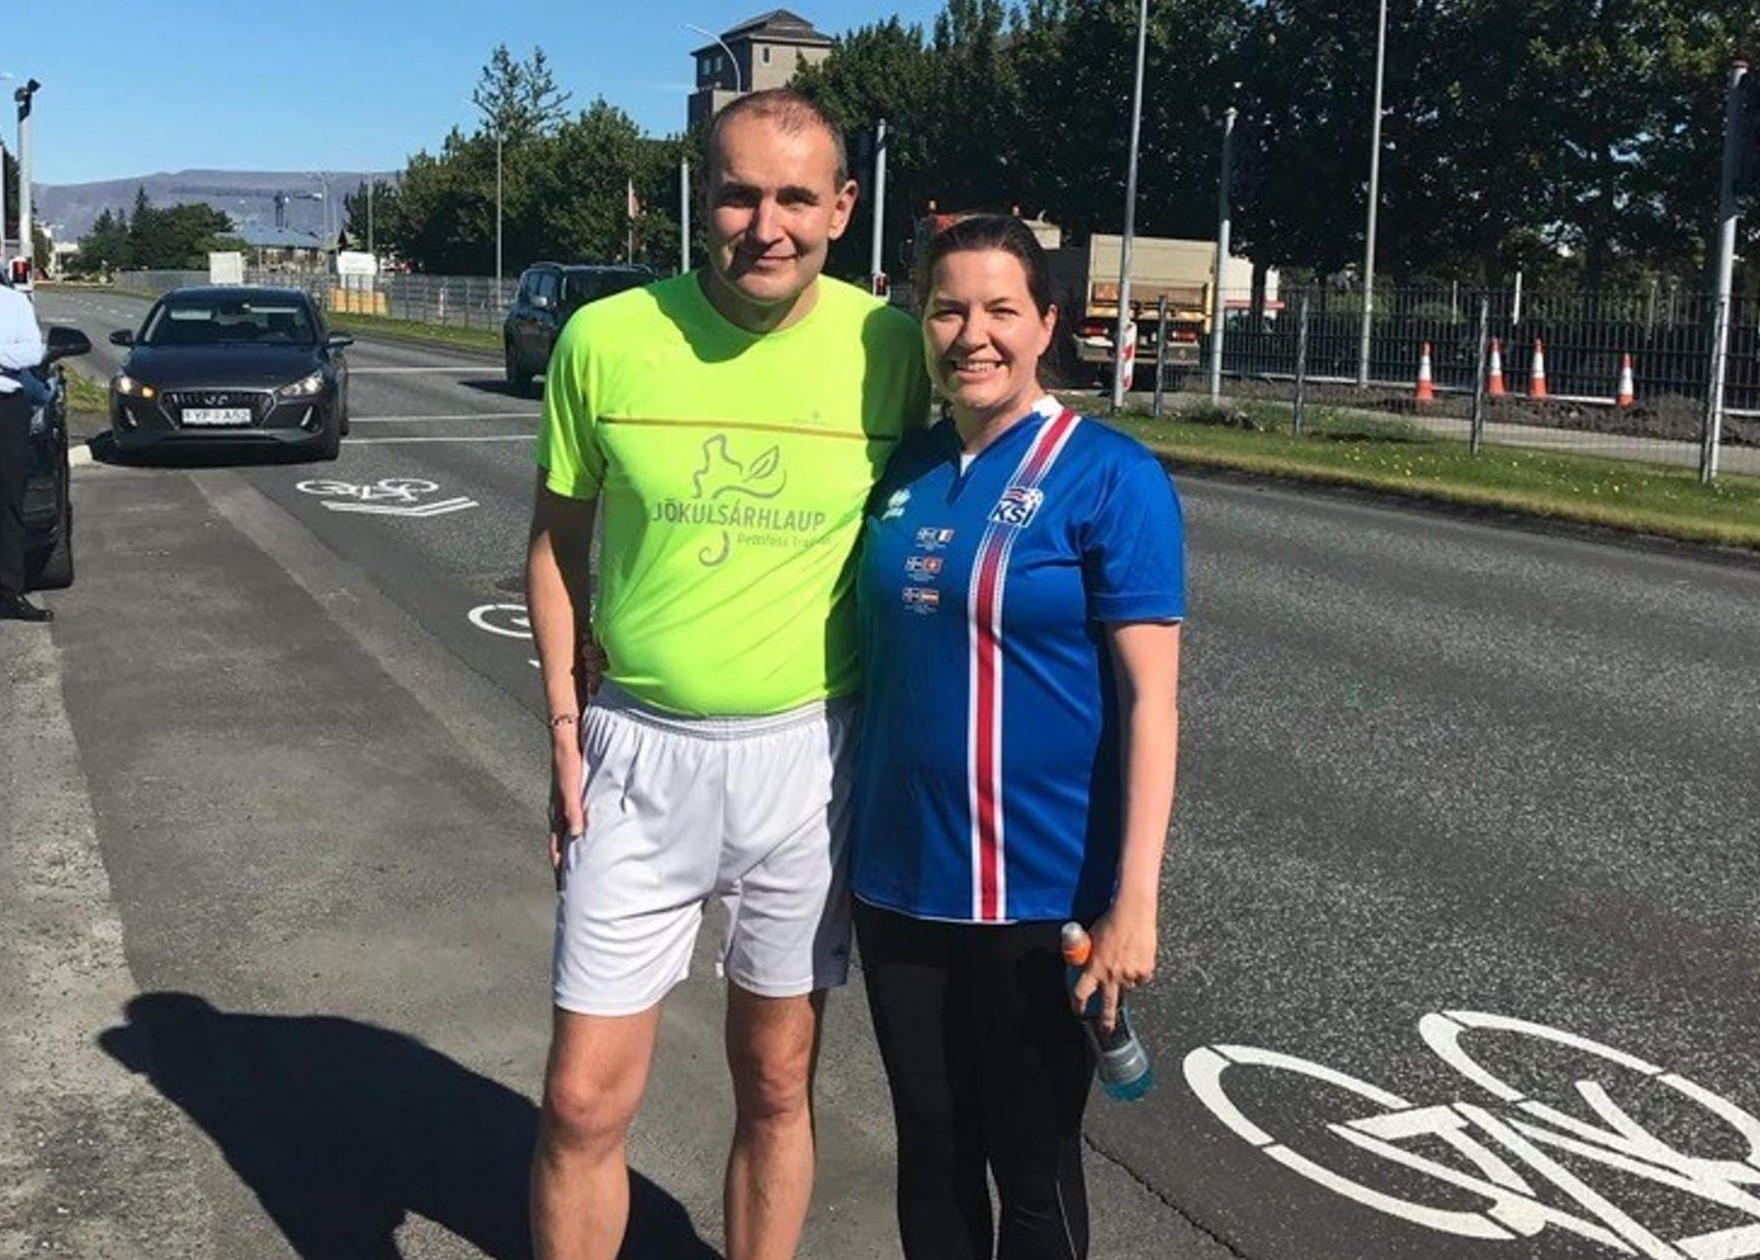 The Icelandic president ran for charity